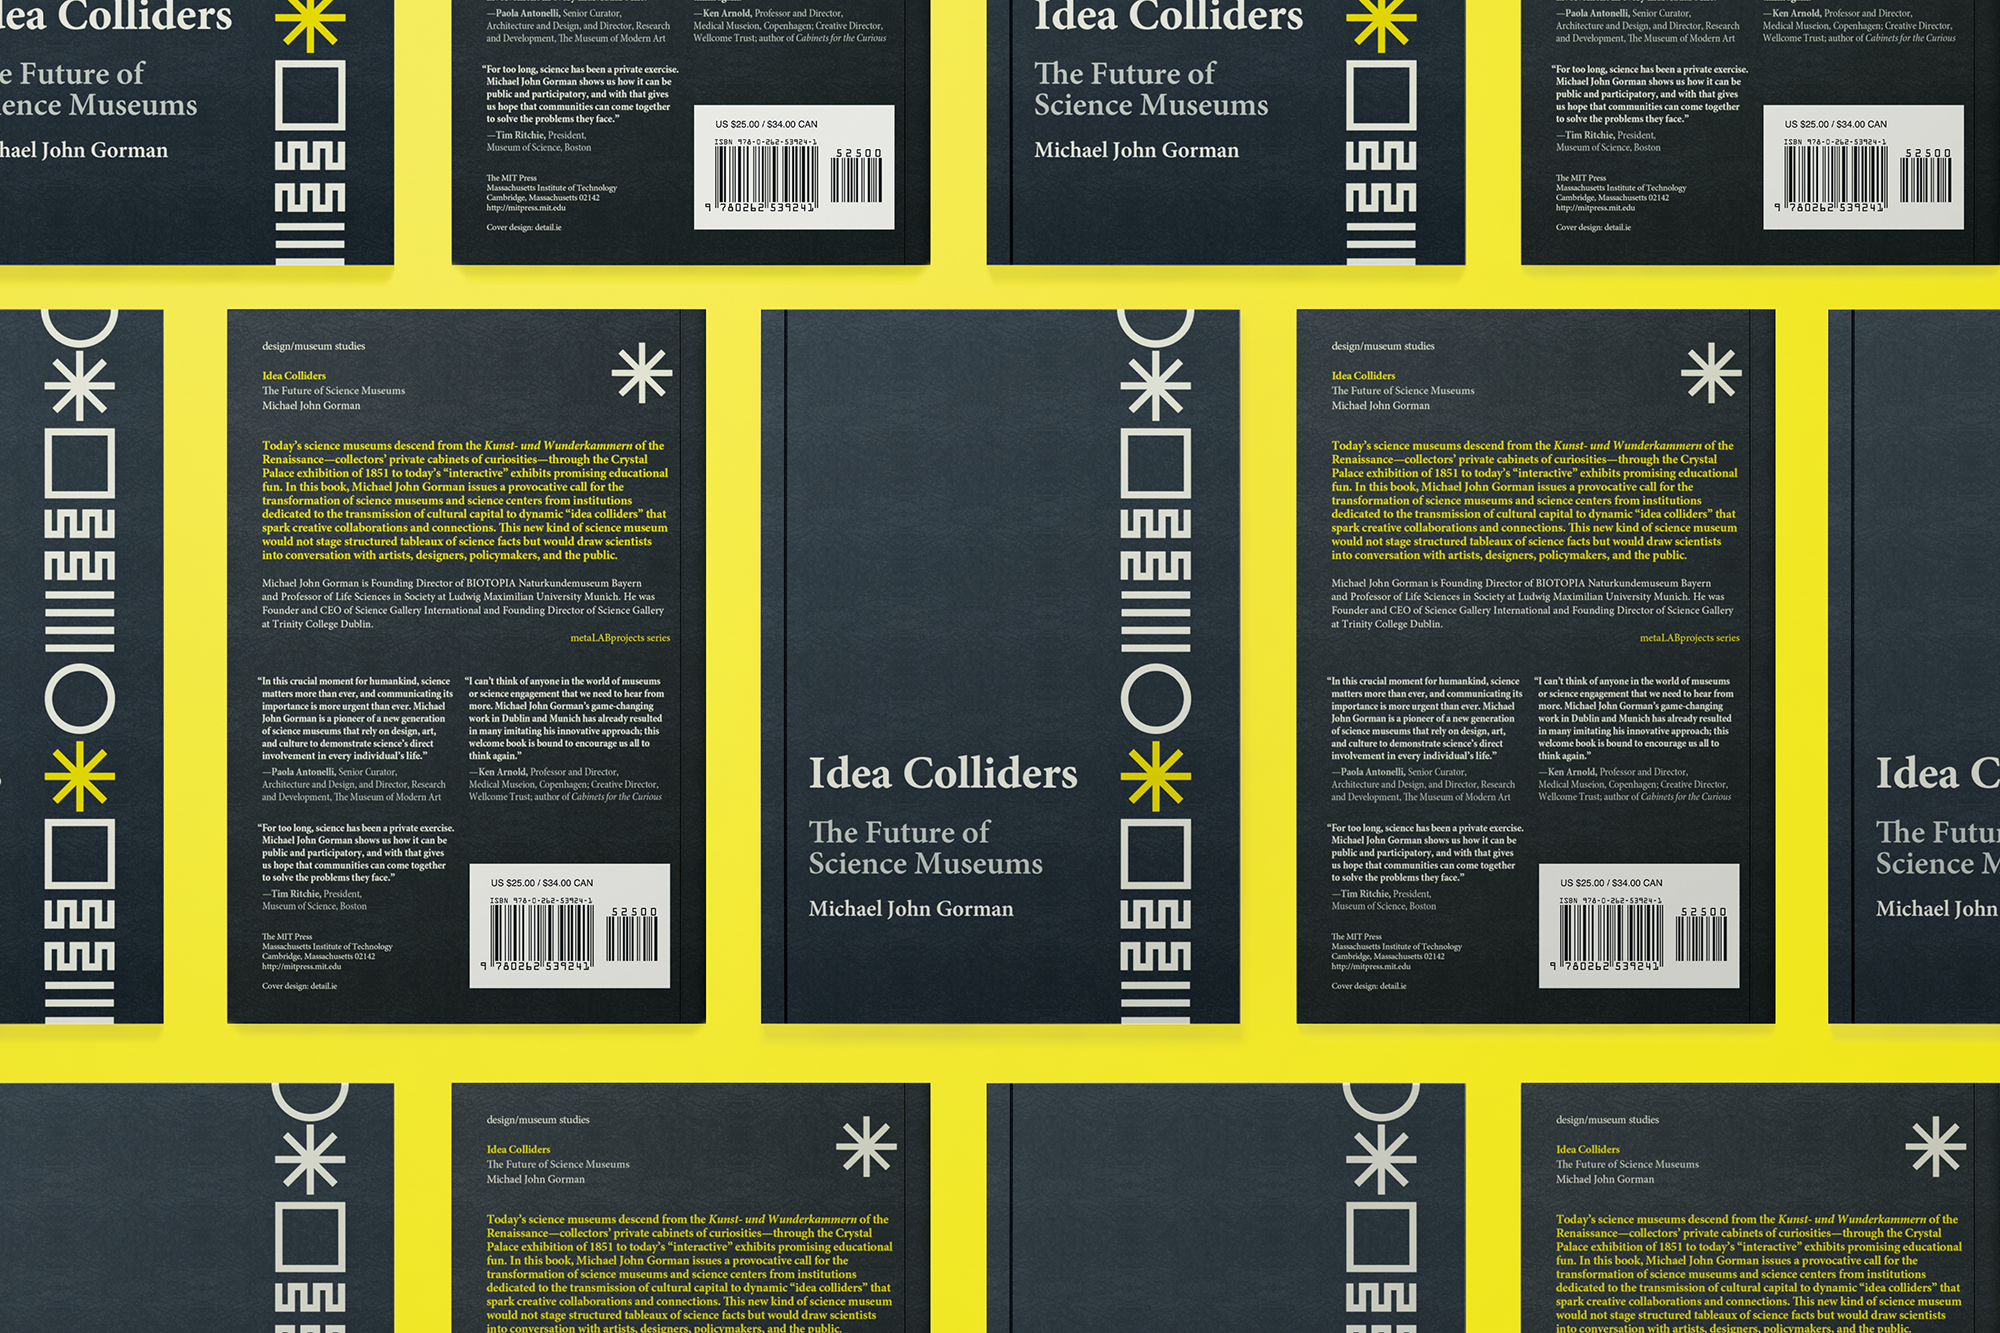 Cover image: Idea Colliders